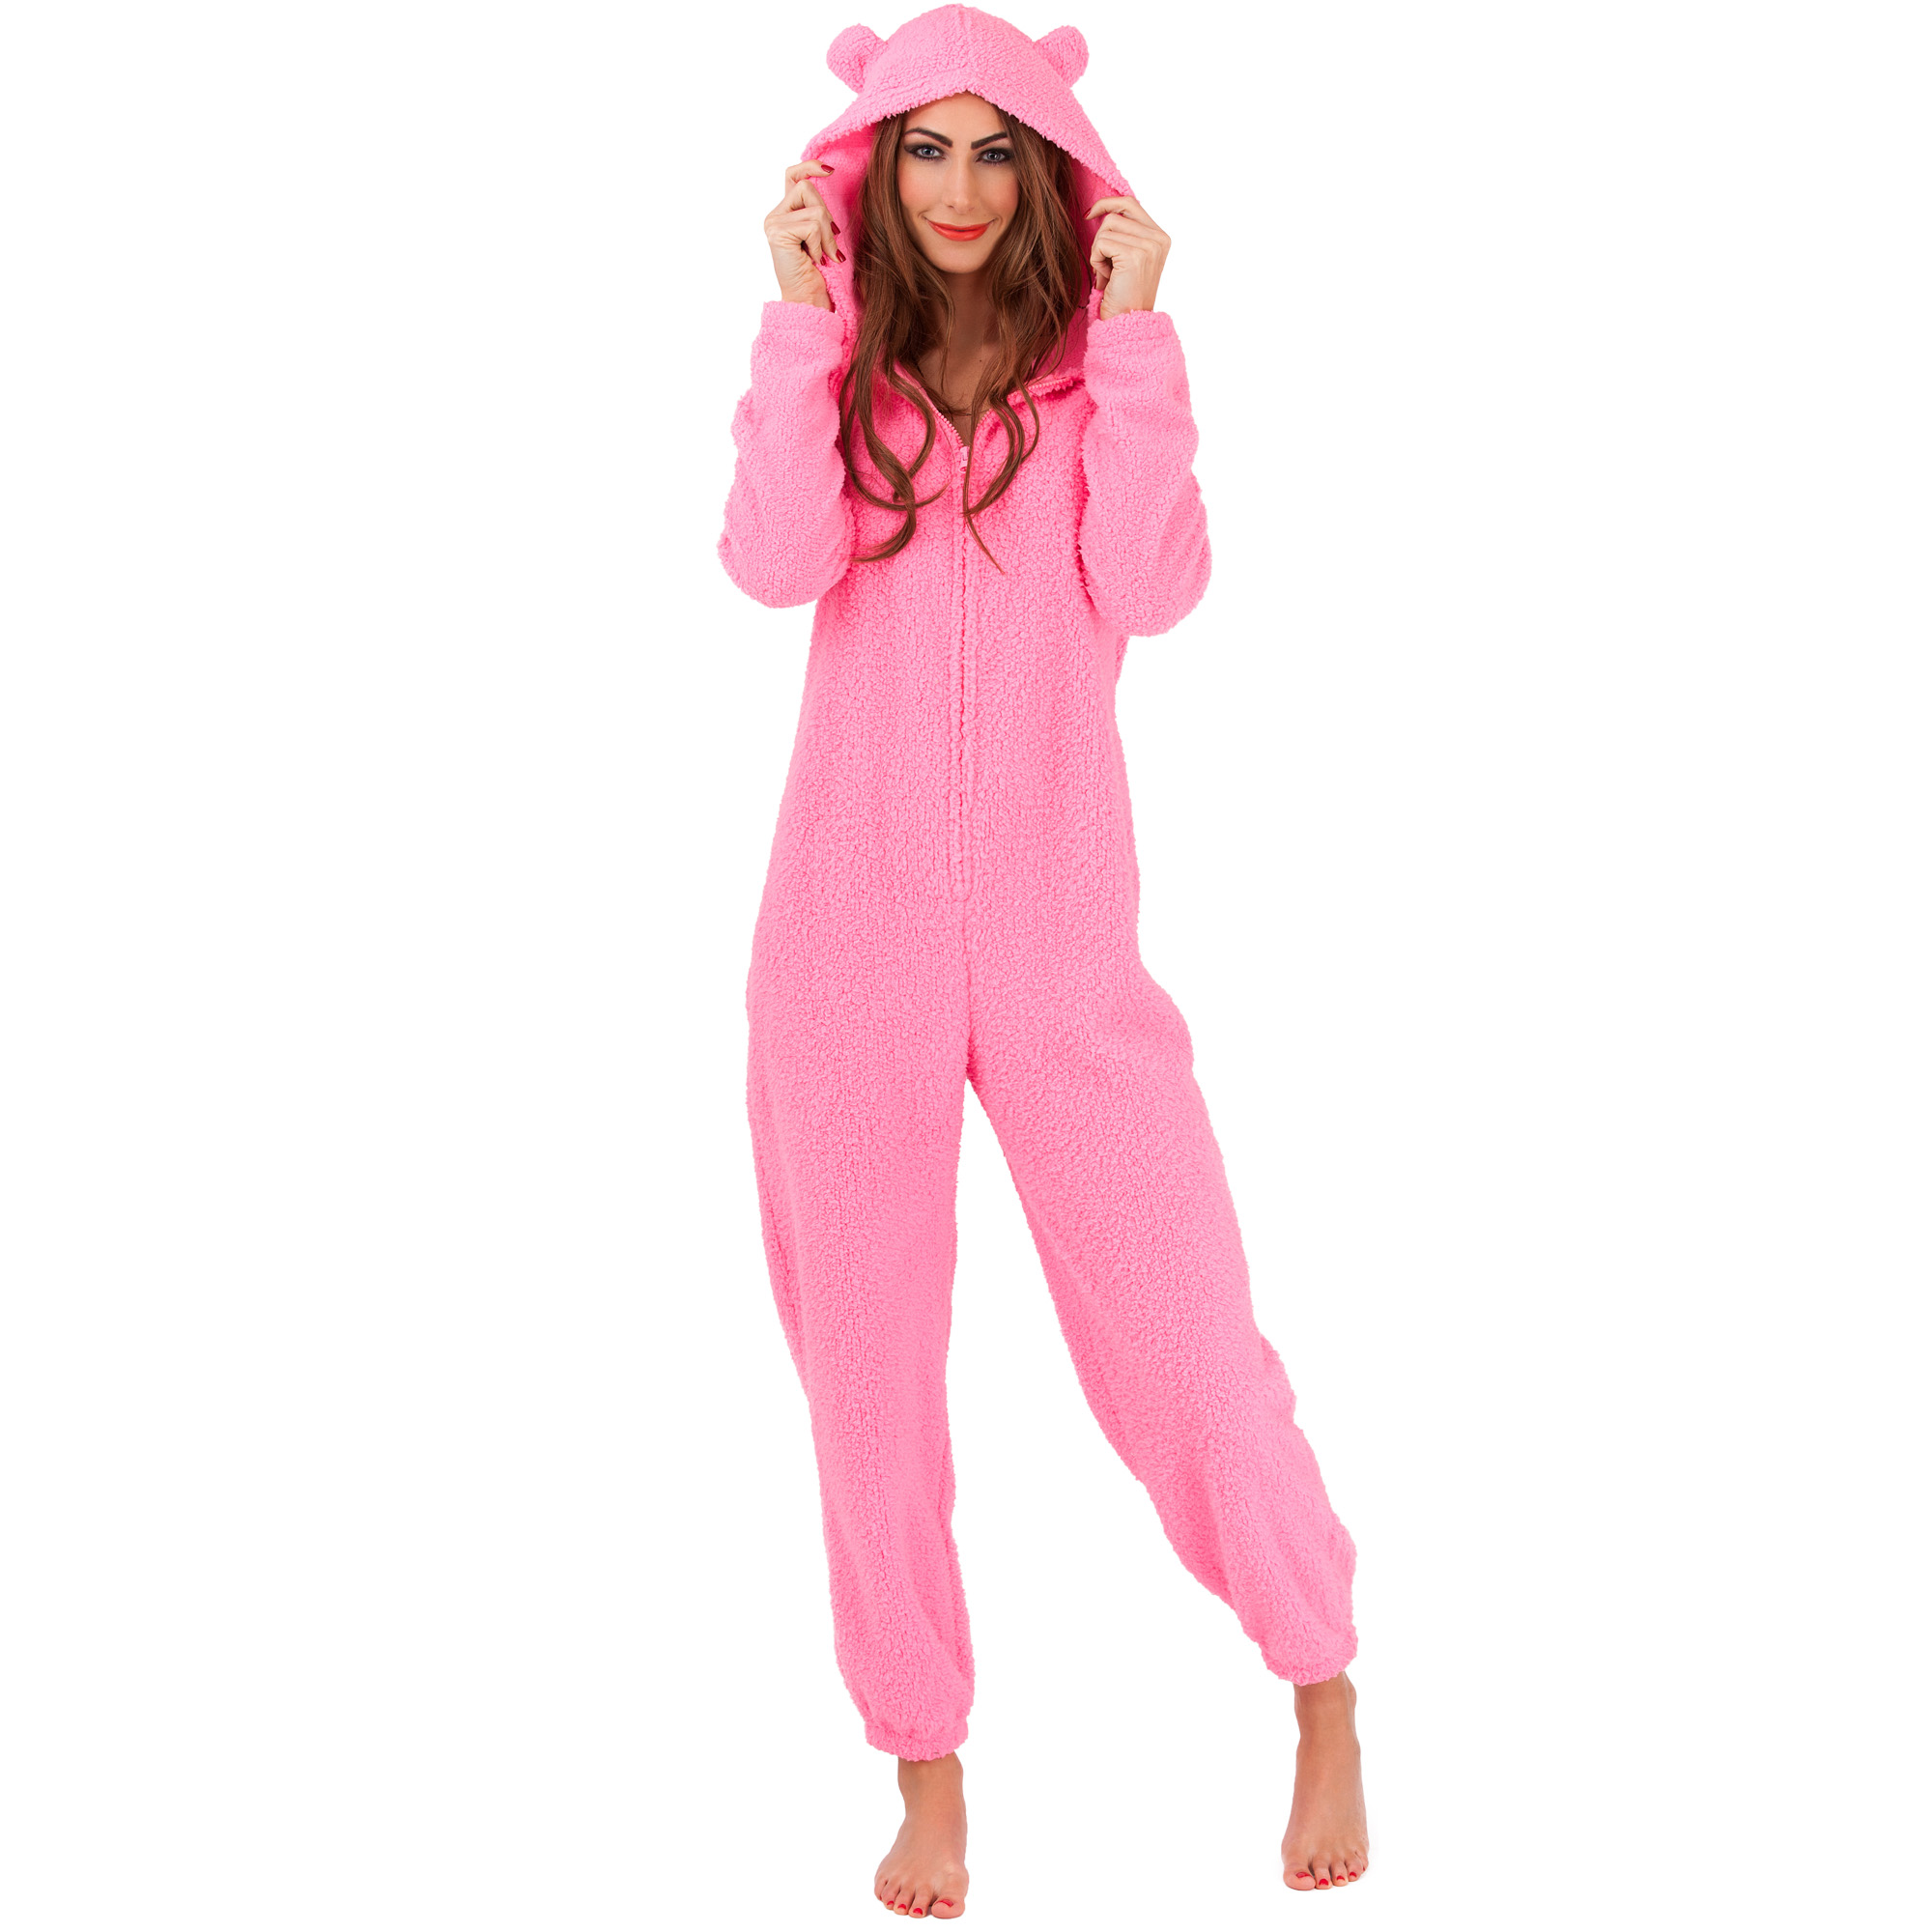 damen jumpsuit overall strampler pyjama einteiler onesie. Black Bedroom Furniture Sets. Home Design Ideas